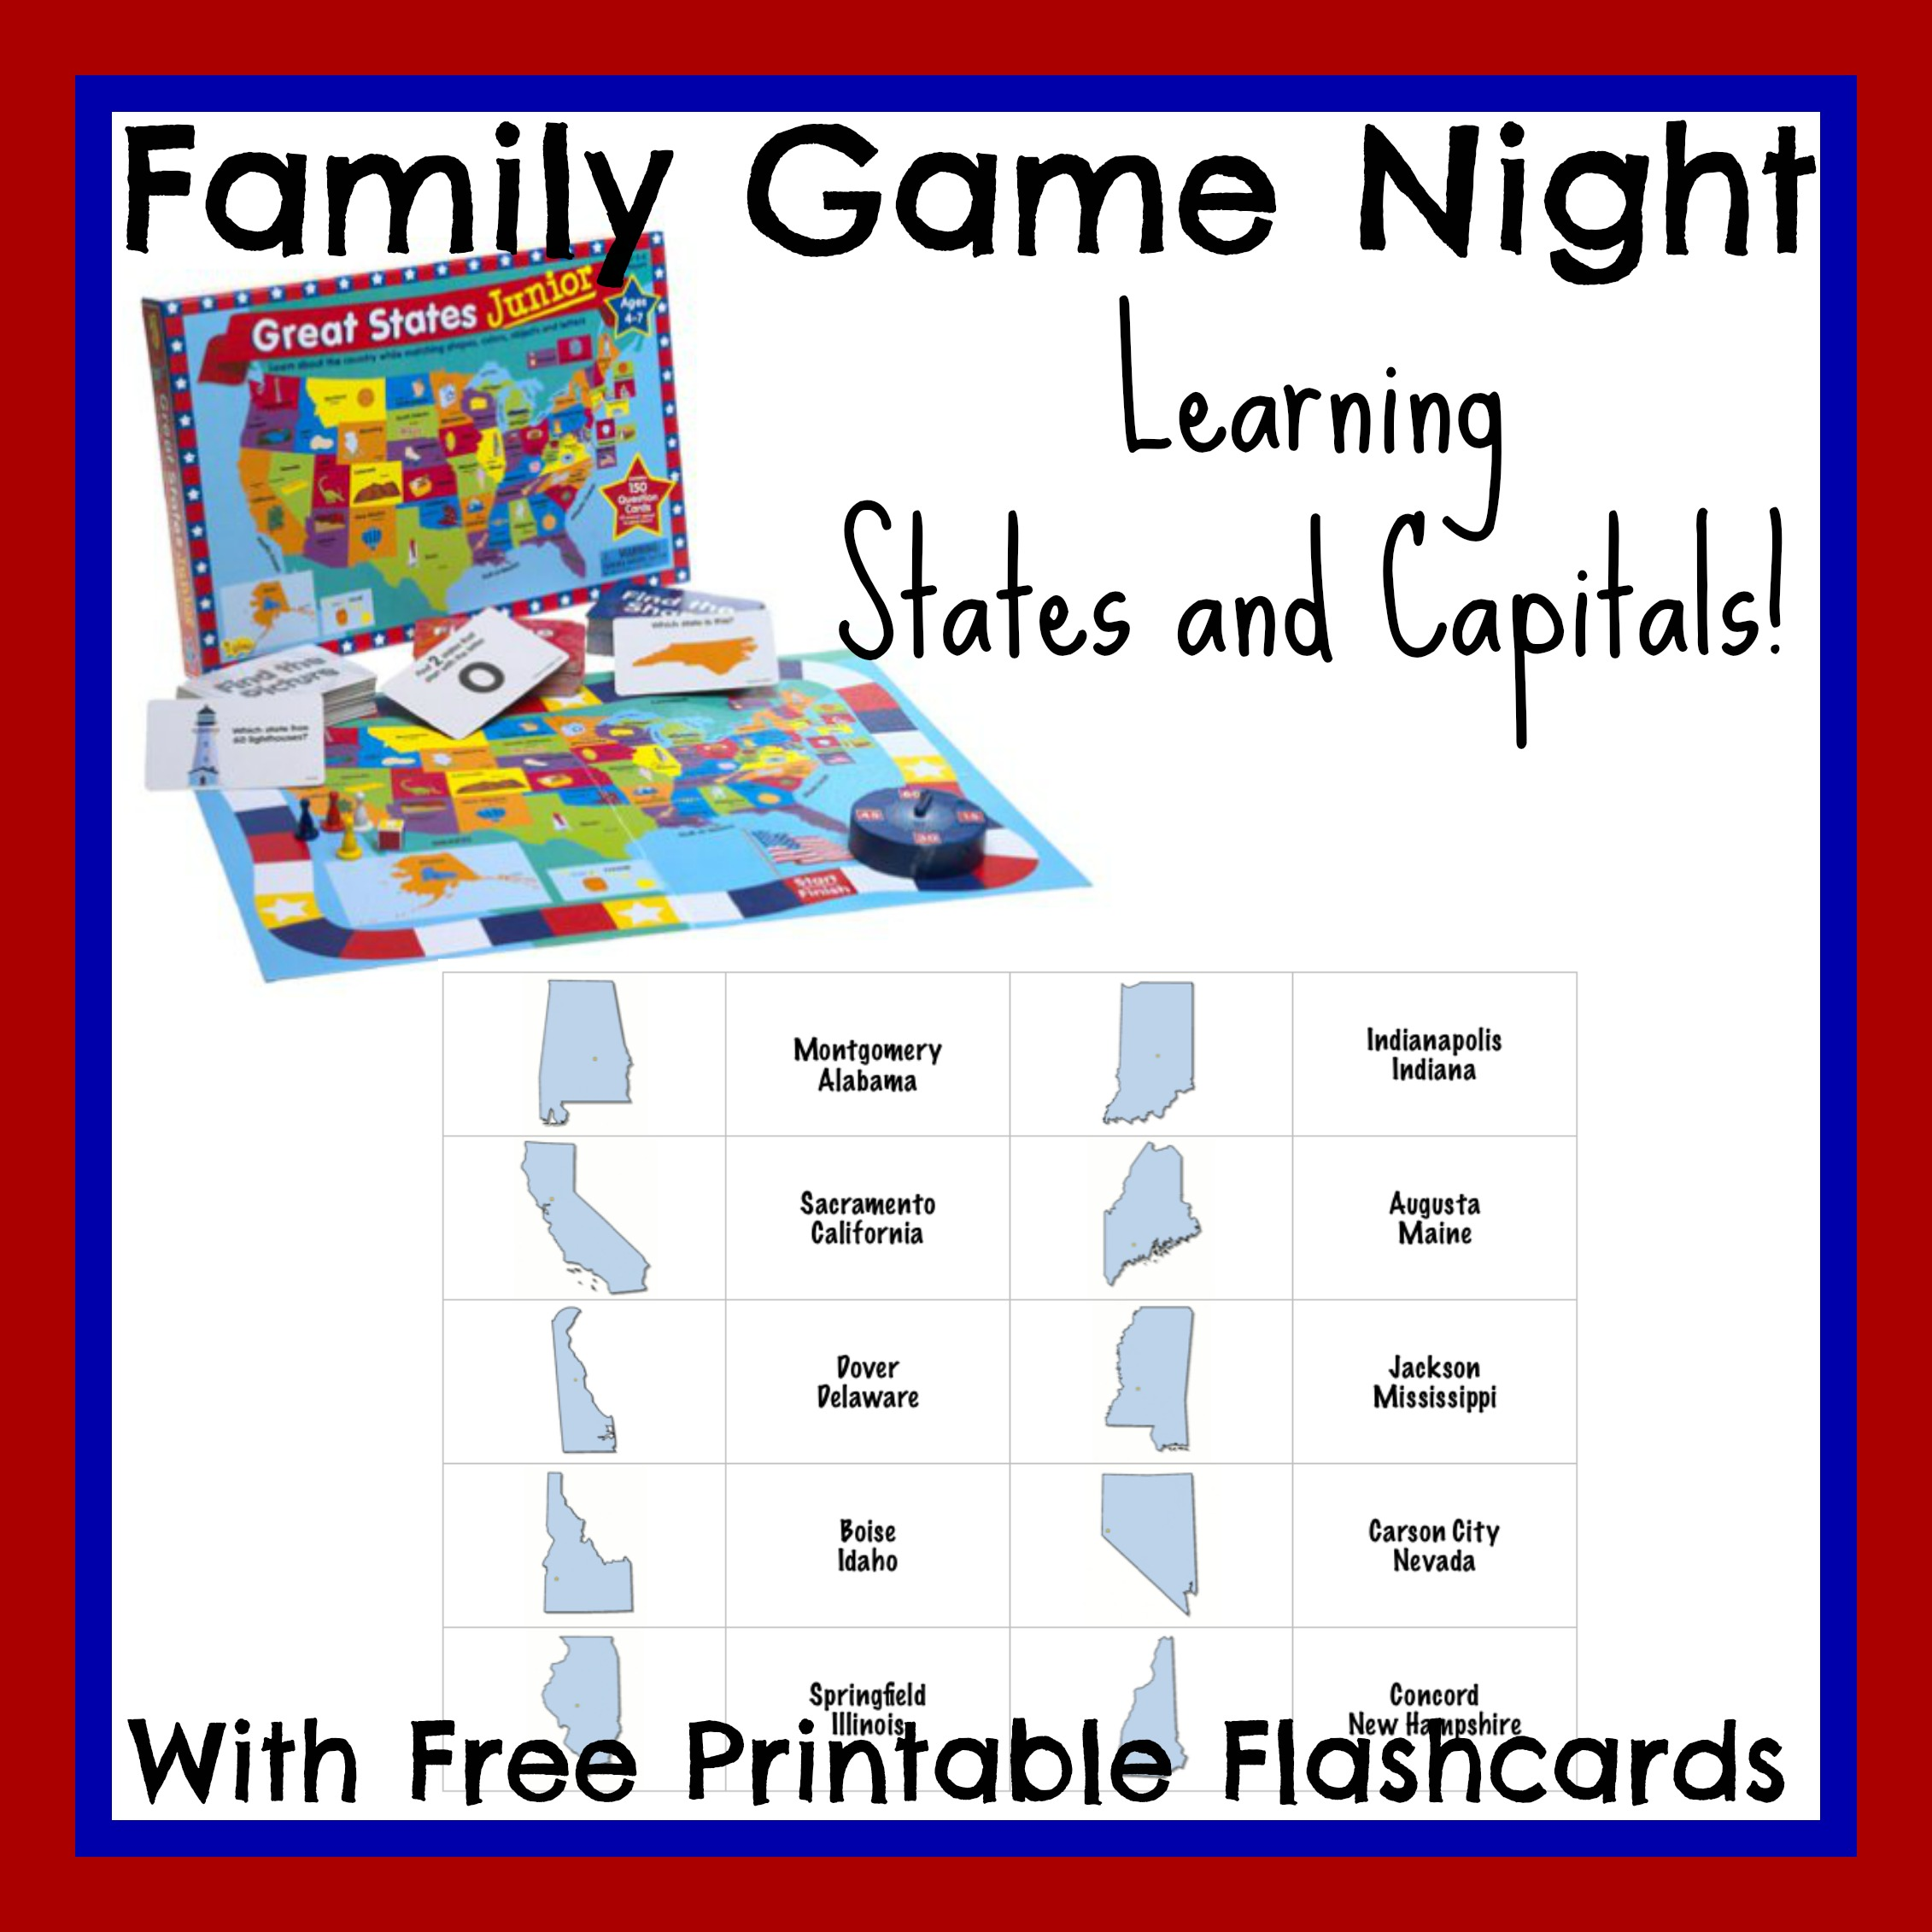 photograph about States and Capitals Flash Cards Printable identified as Finding out Suggests and Capitals with Loved ones Recreation Evening! 3